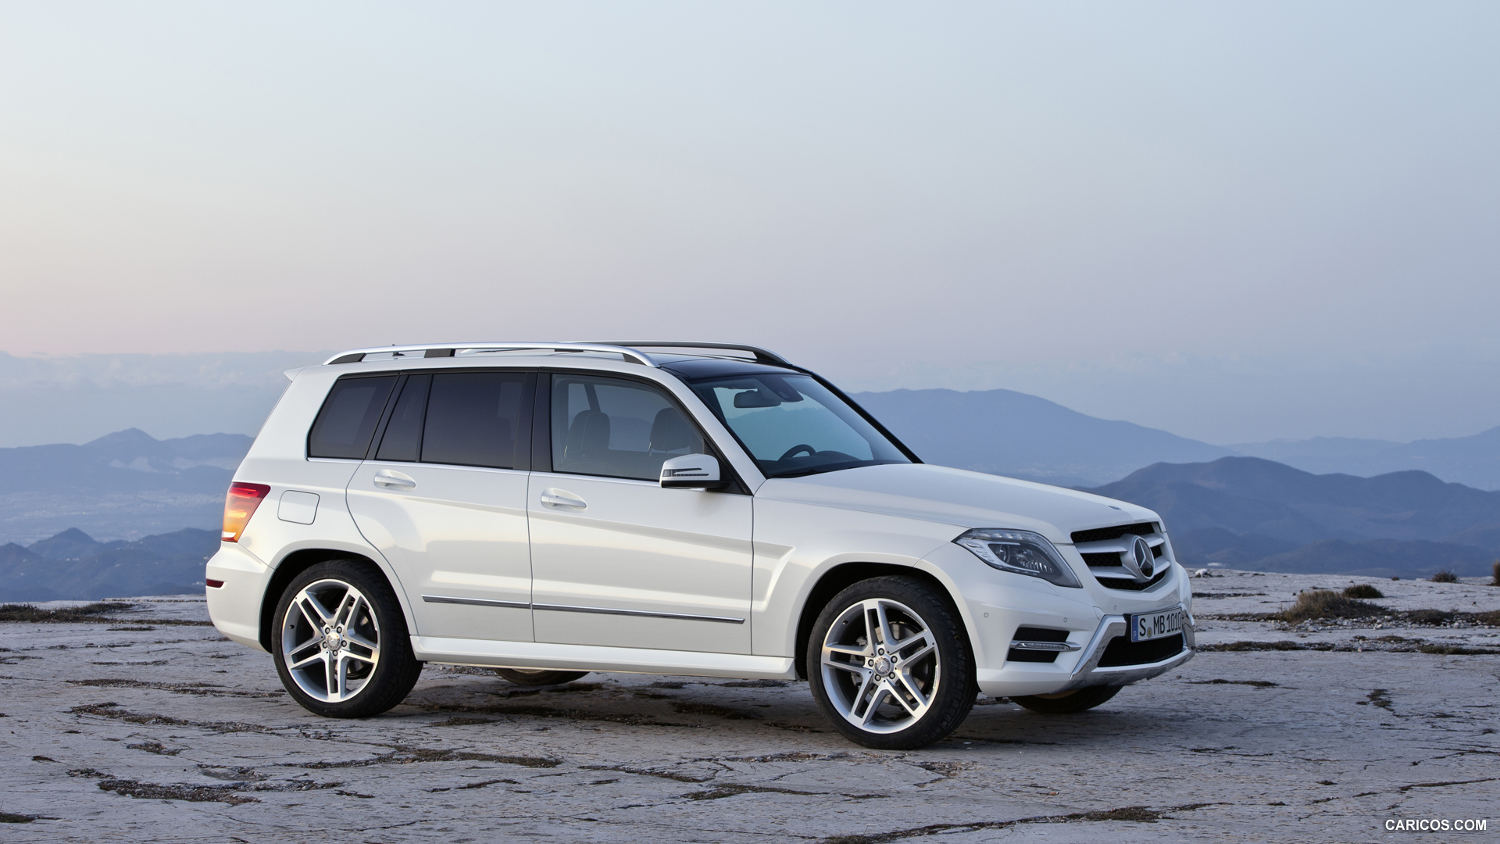 Comparison mercedes benz glk class glk350 vs for Mercedes benz glk 350 review